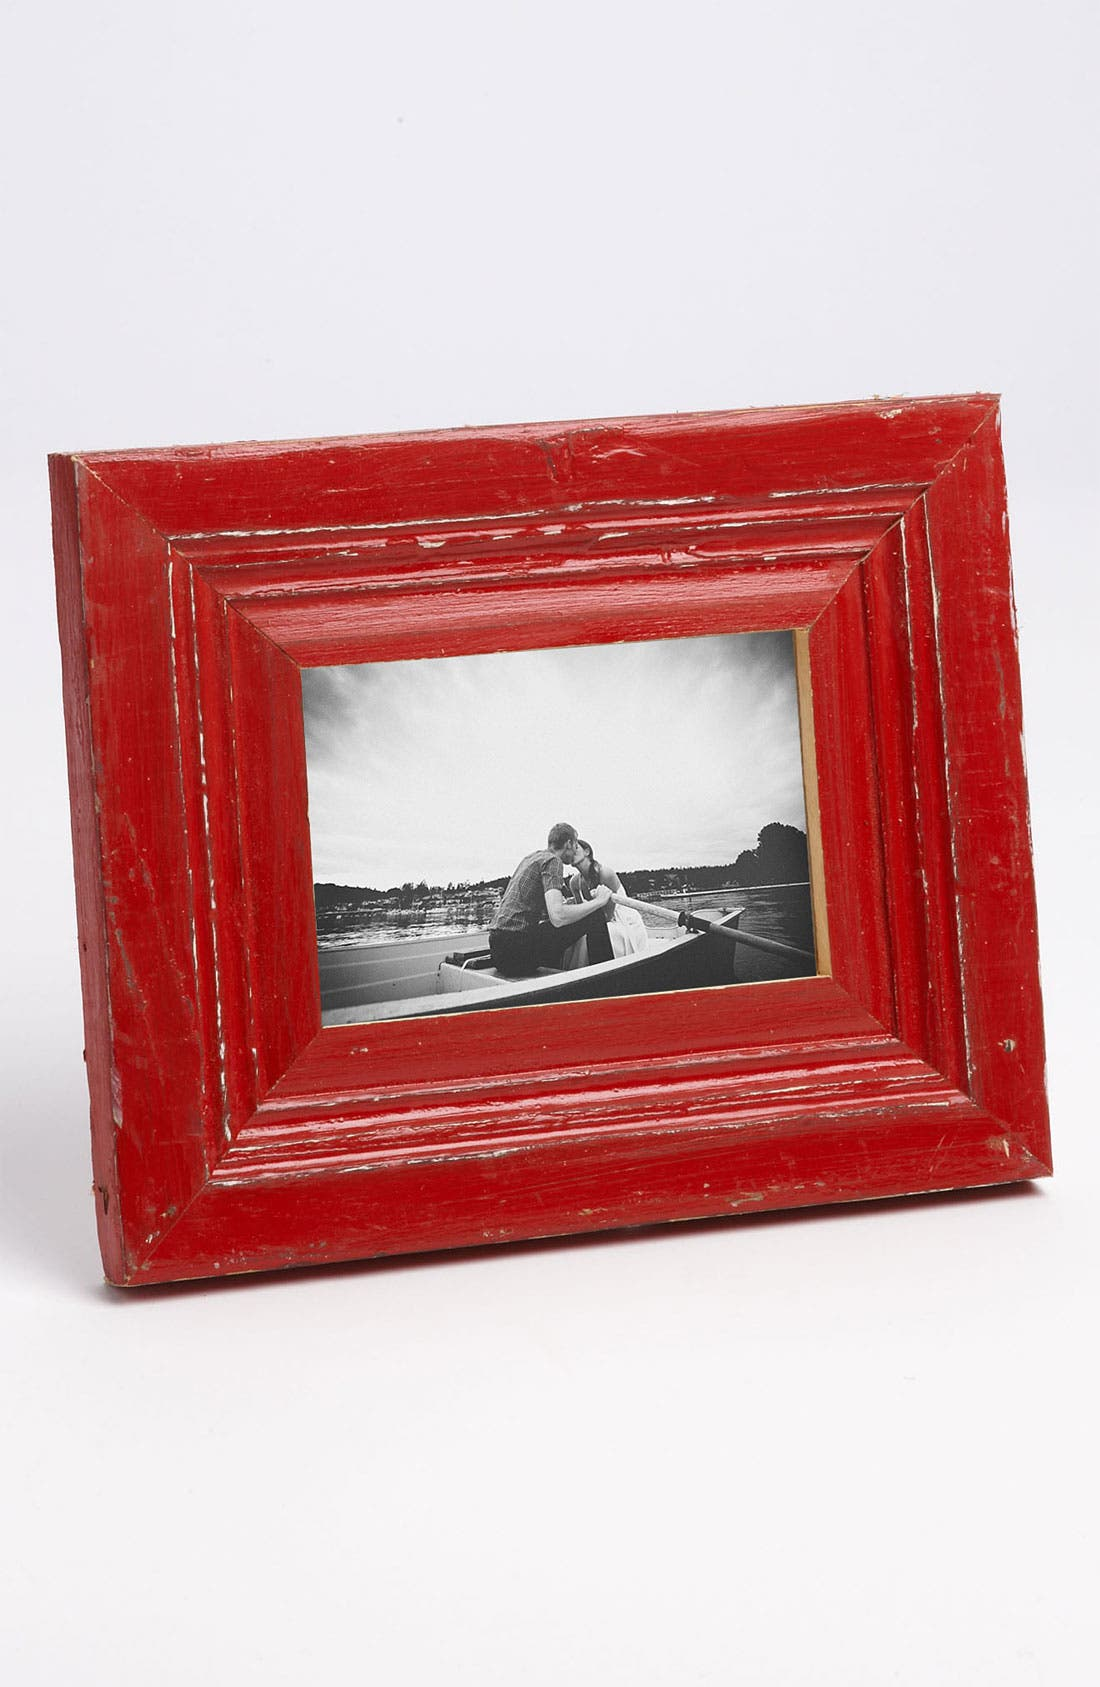 Alternate Image 1 Selected - Distressed Wood Picture Frame (5x7)